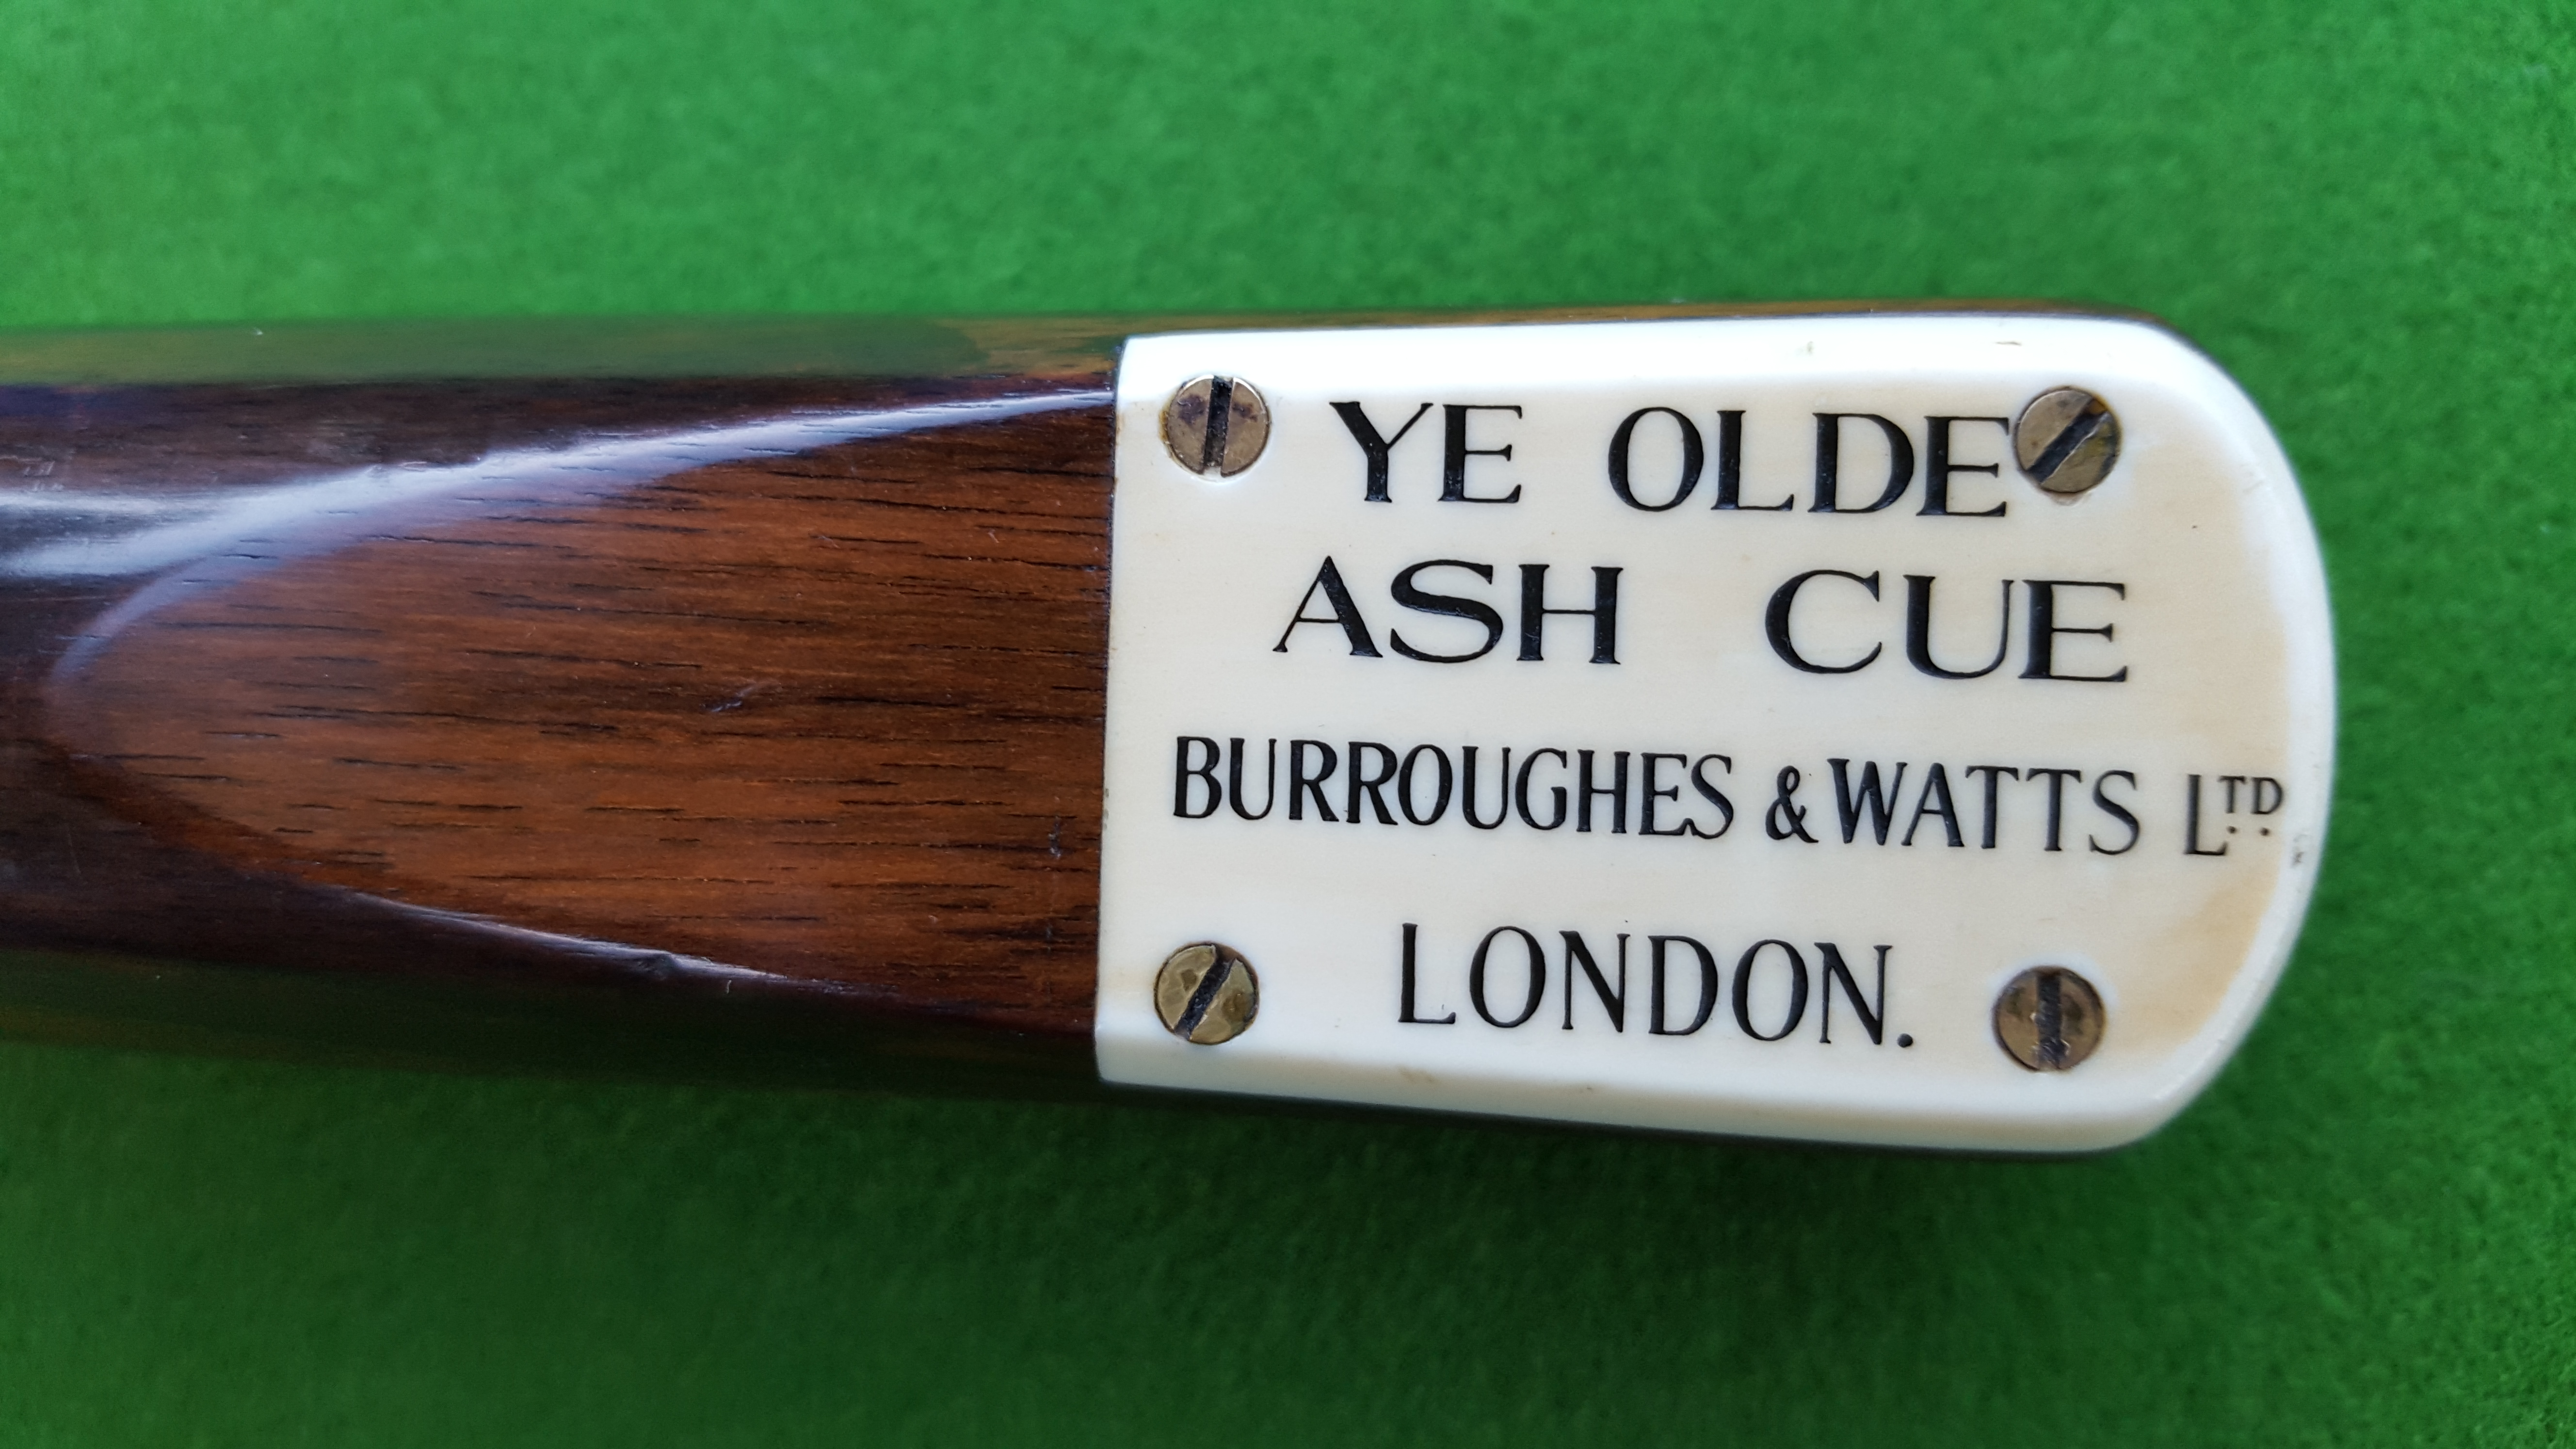 http://vintagebilliards.co.uk/wp-content/uploads/2015/09/20160110_151826.jpg